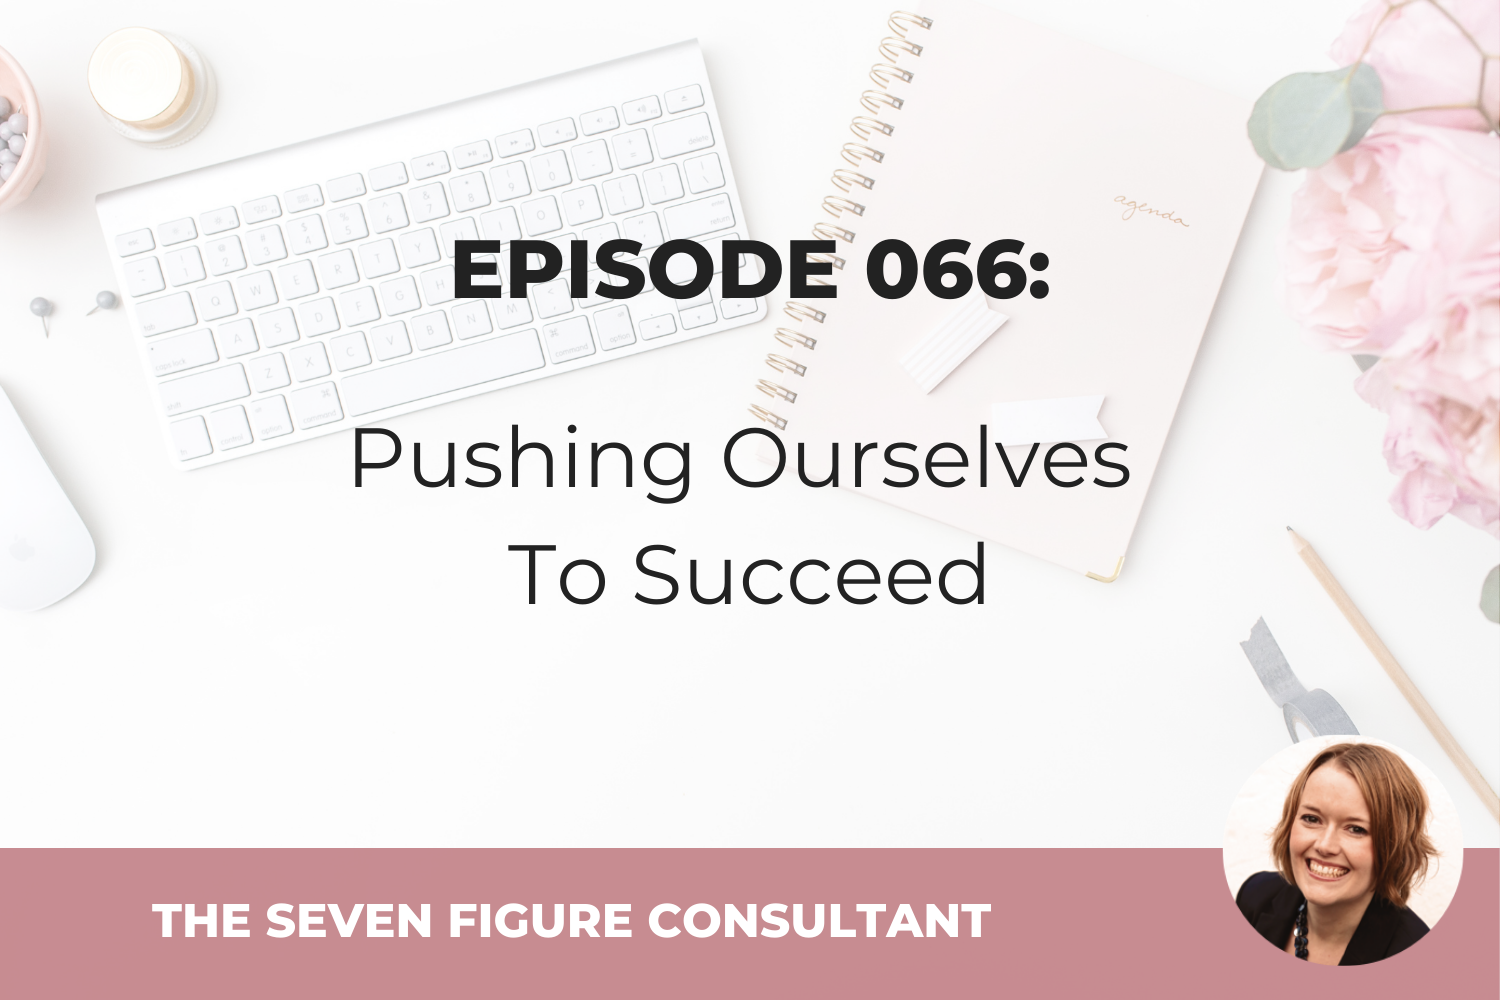 Episode 066: Pushing Ourselves To Succeed